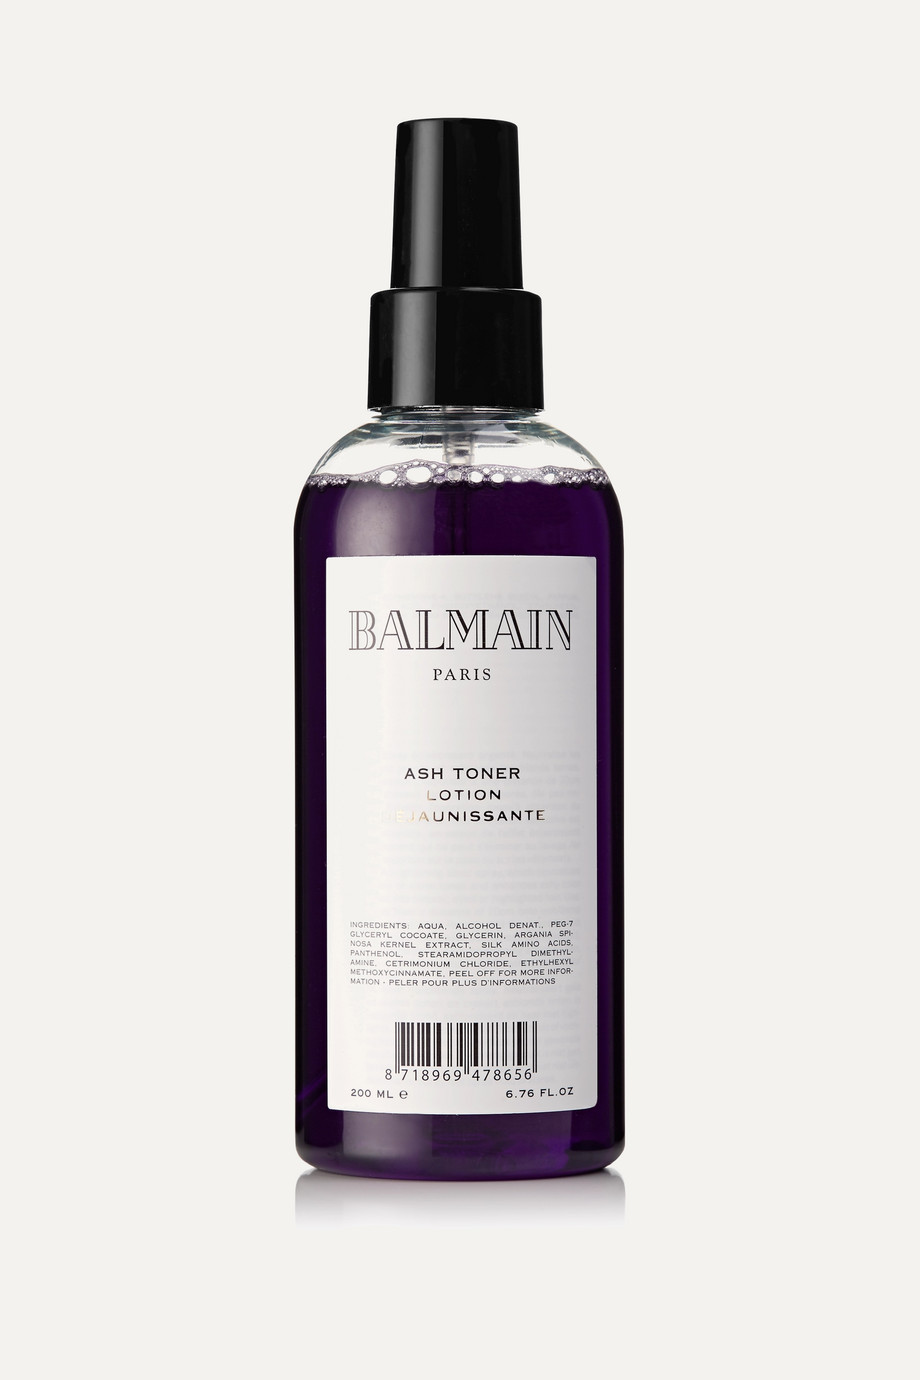 Balmain Paris Hair Couture Ash Toner, 200ml